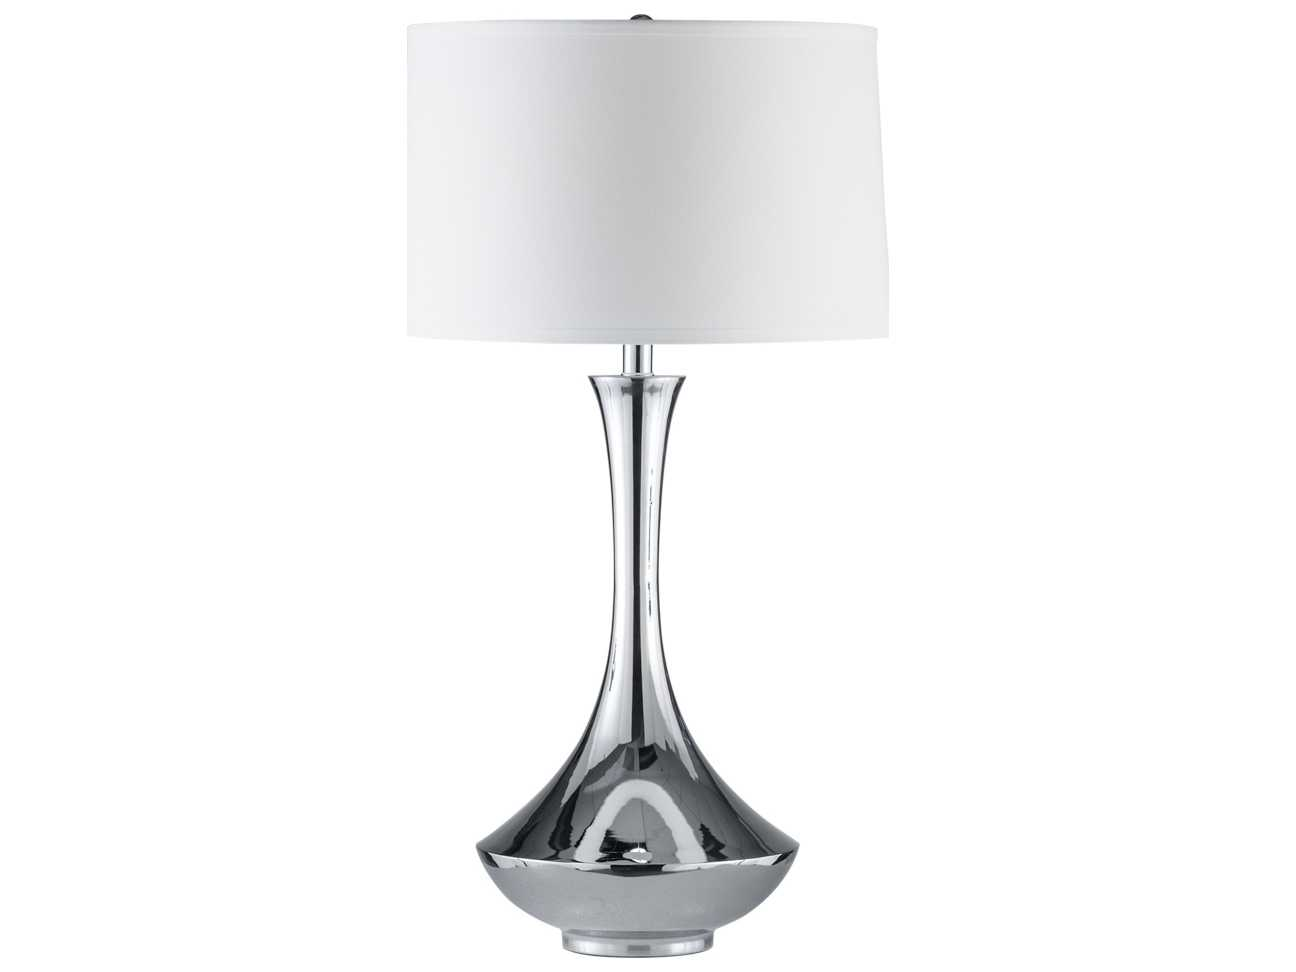 nova aladdin brushed nickel table lamp 1010482. Black Bedroom Furniture Sets. Home Design Ideas